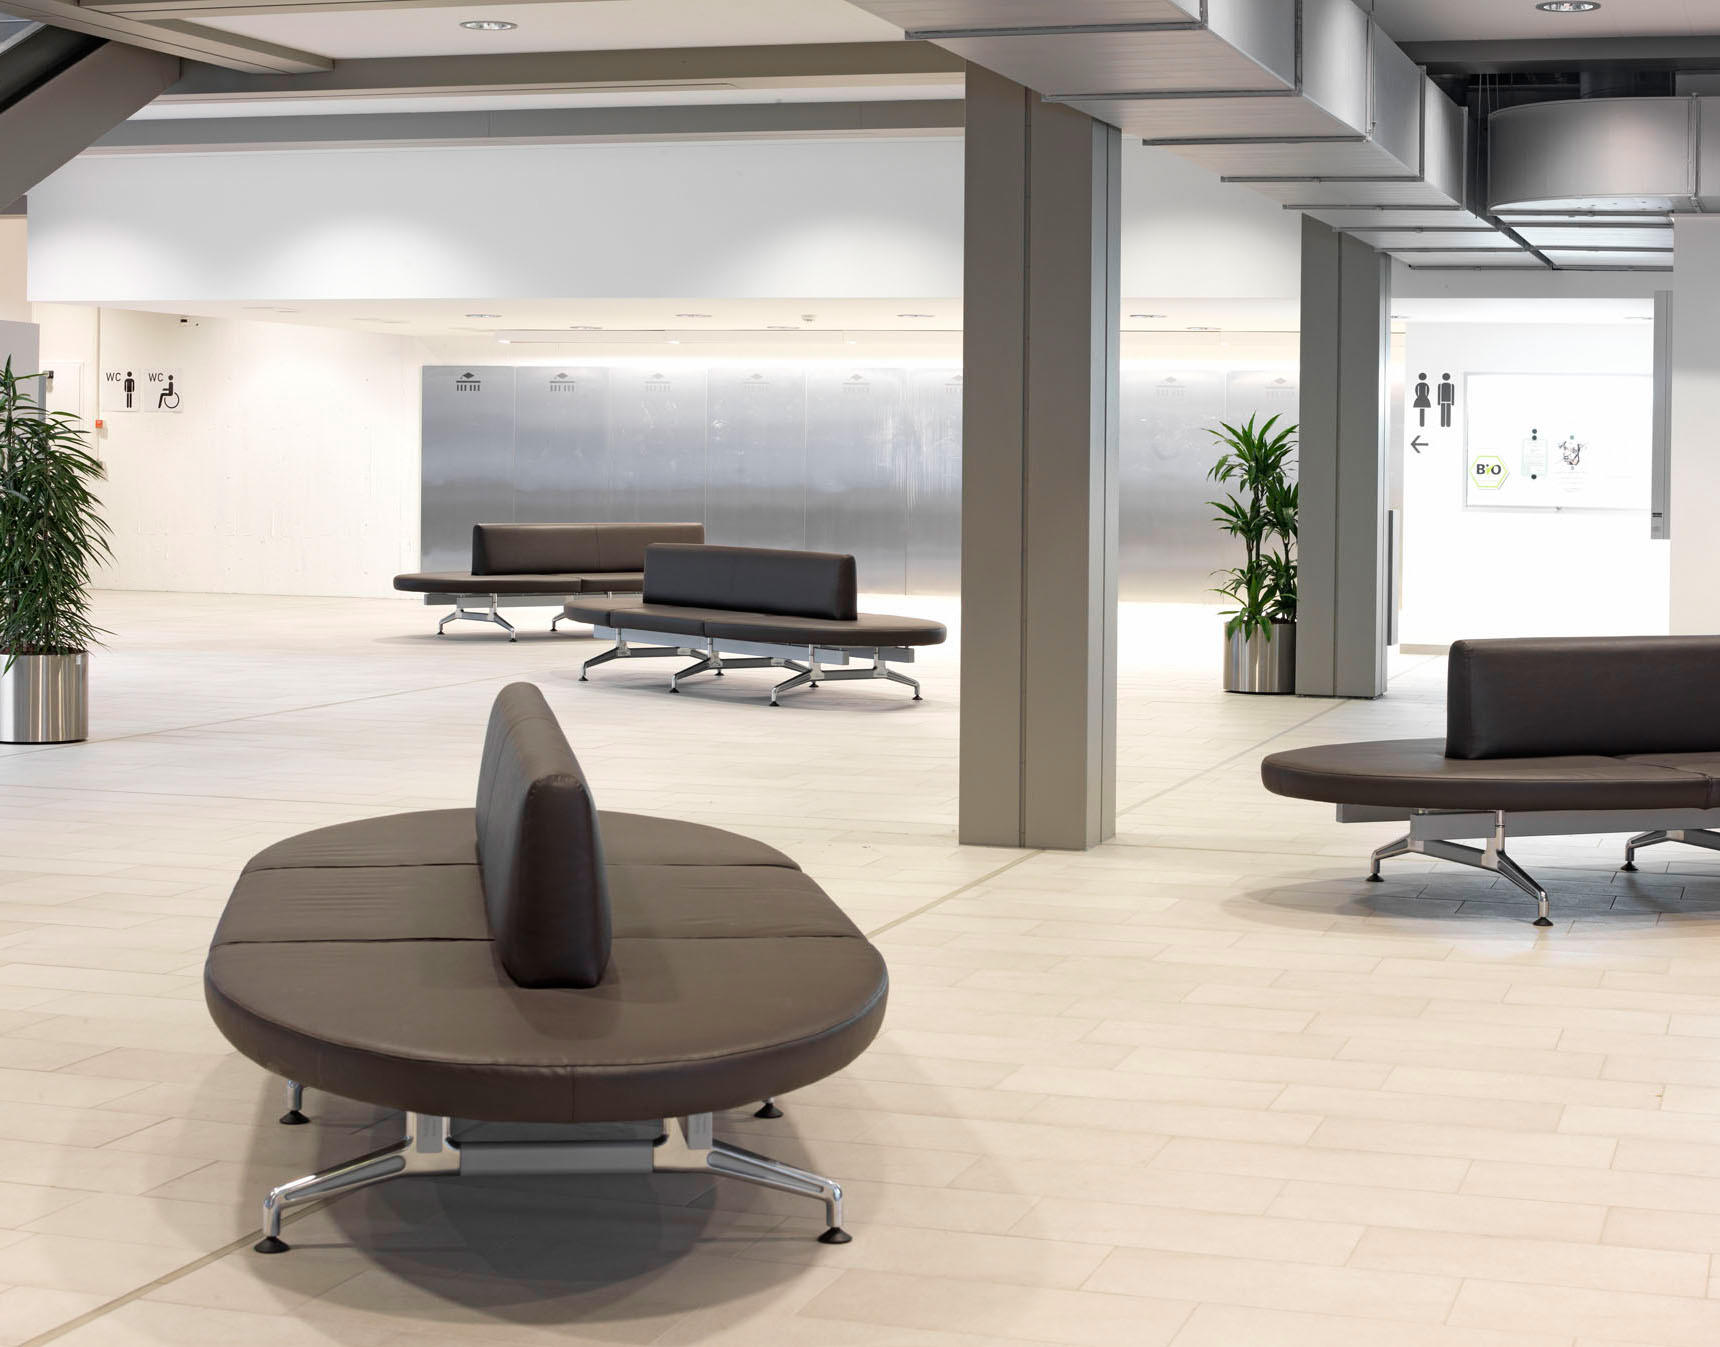 7303/5 TERMINAL - Waiting area benches from Kusch+Co | Architonic